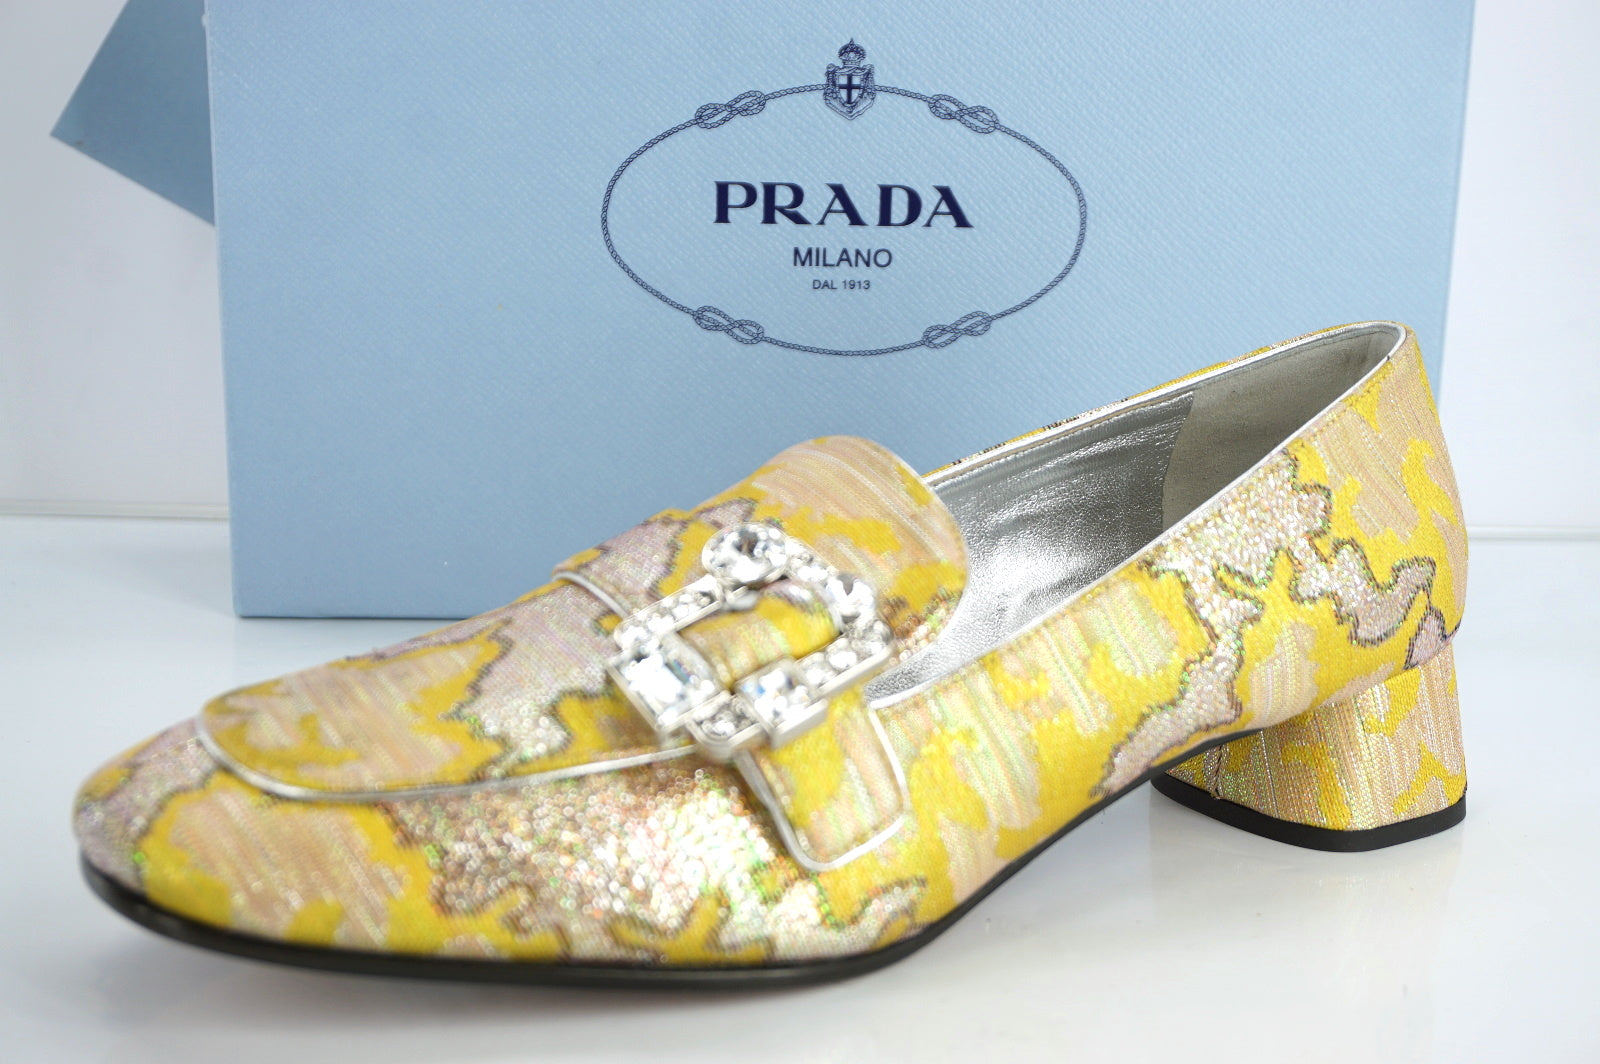 Prada Metallic Jacquard Lurex Jewel Block Heel Pump Size 37 Moccasin Belted $890